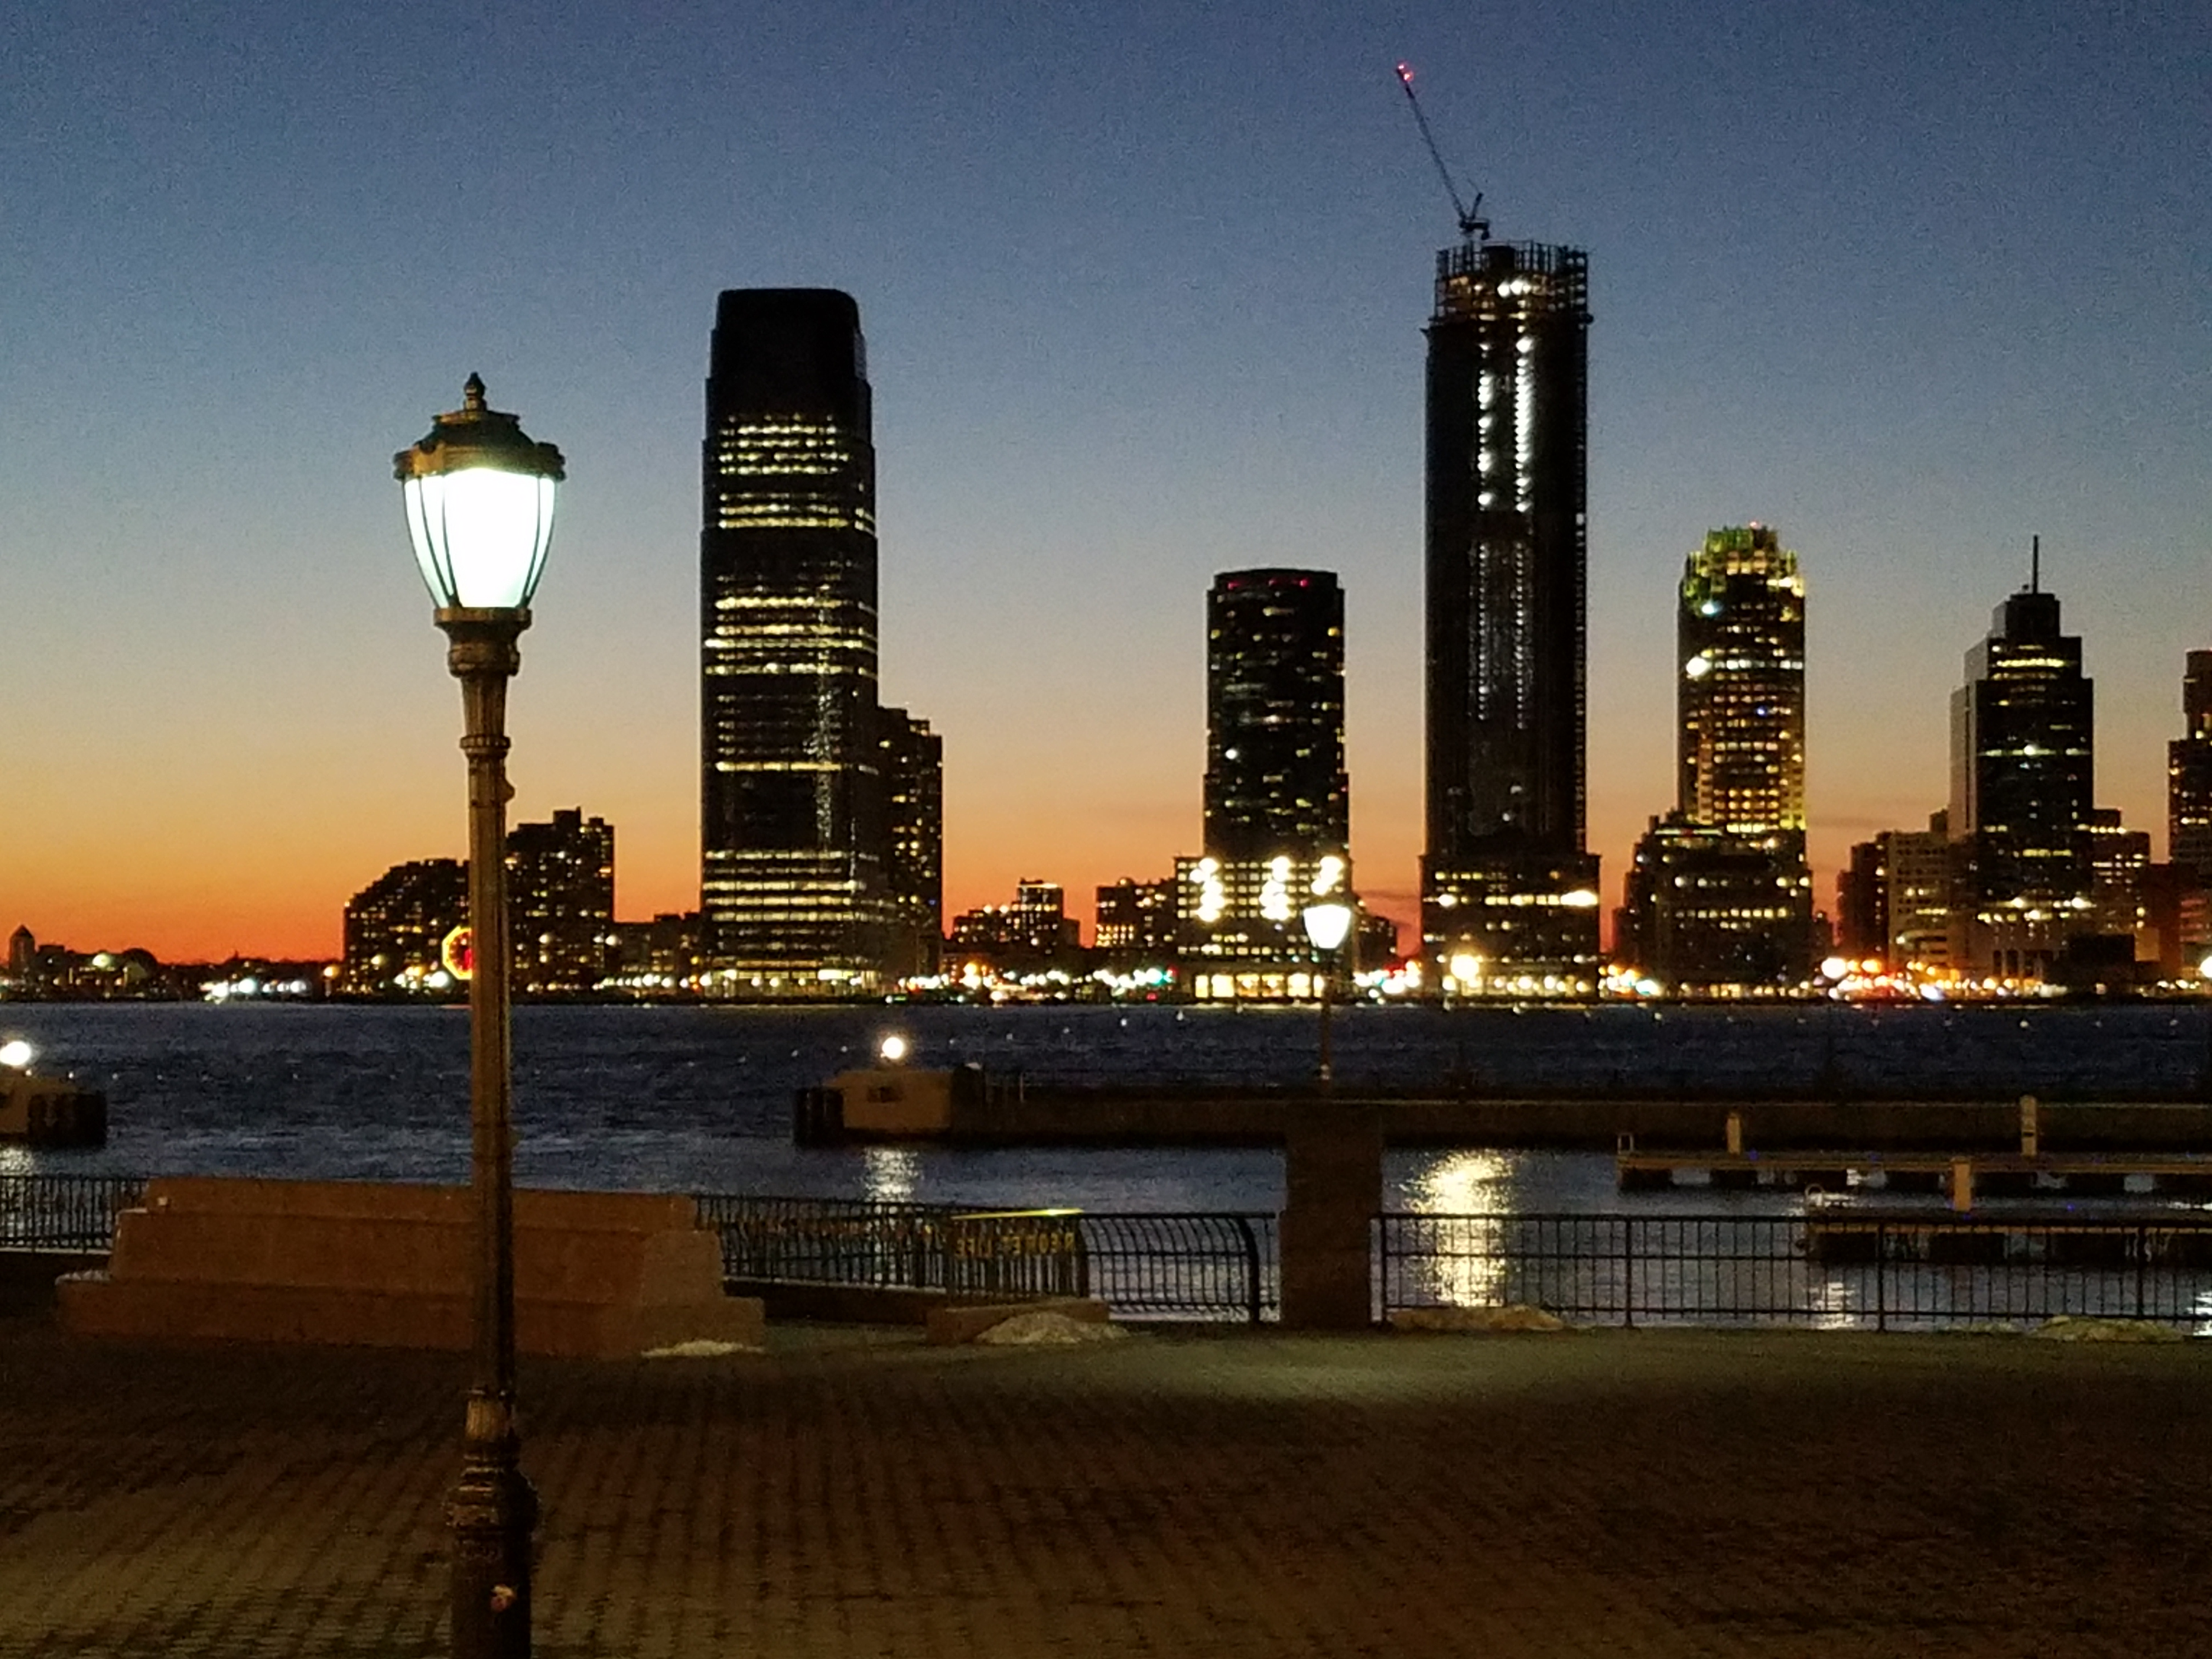 a view of the Jersey City skyline from Manhattan at sunset photo by LensMoments - Nichole Spates 2019